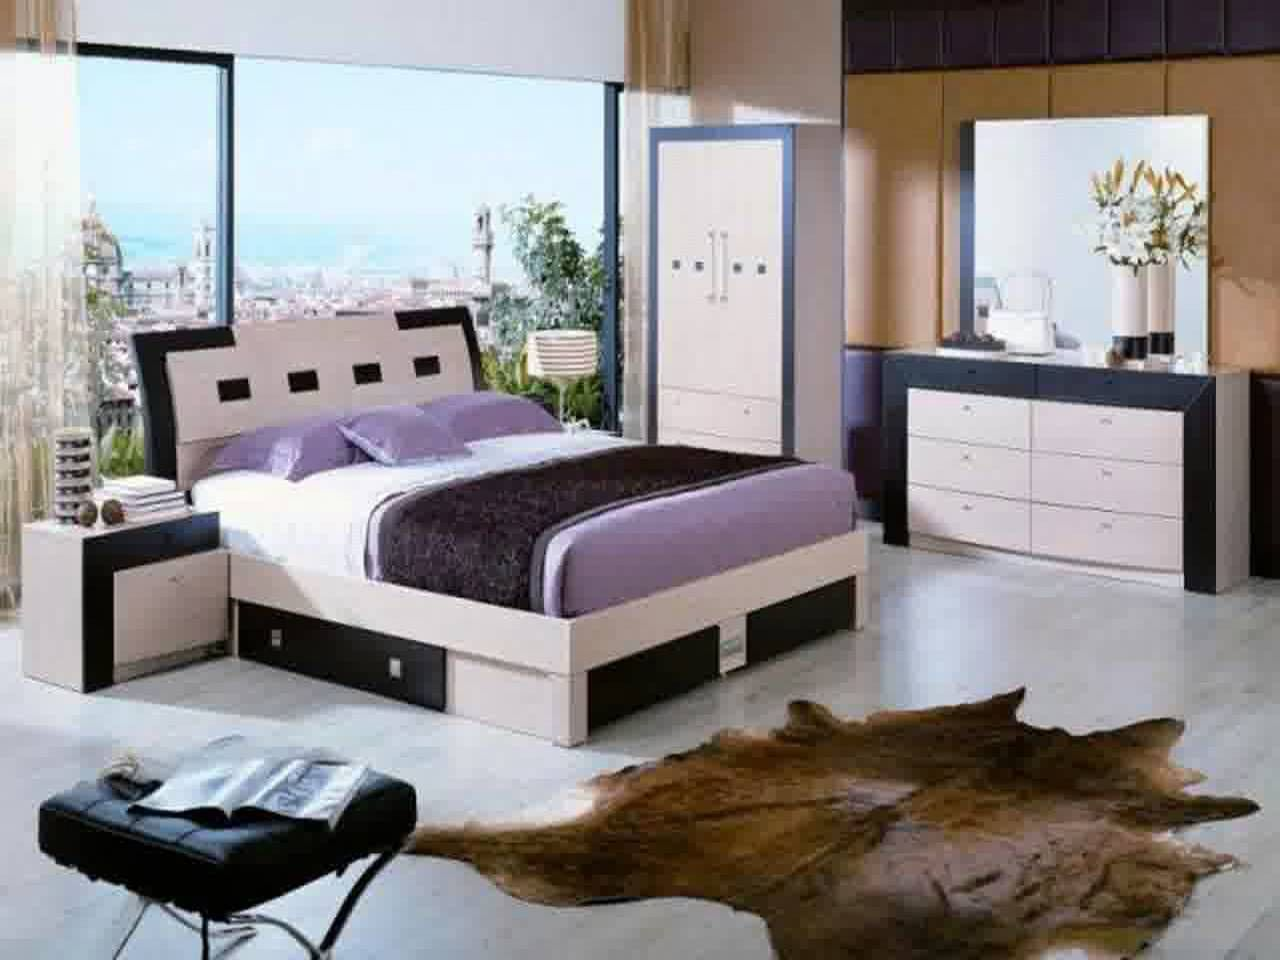 bedroom furniture sets online | design ideas 2017-2018 | Pinterest ...